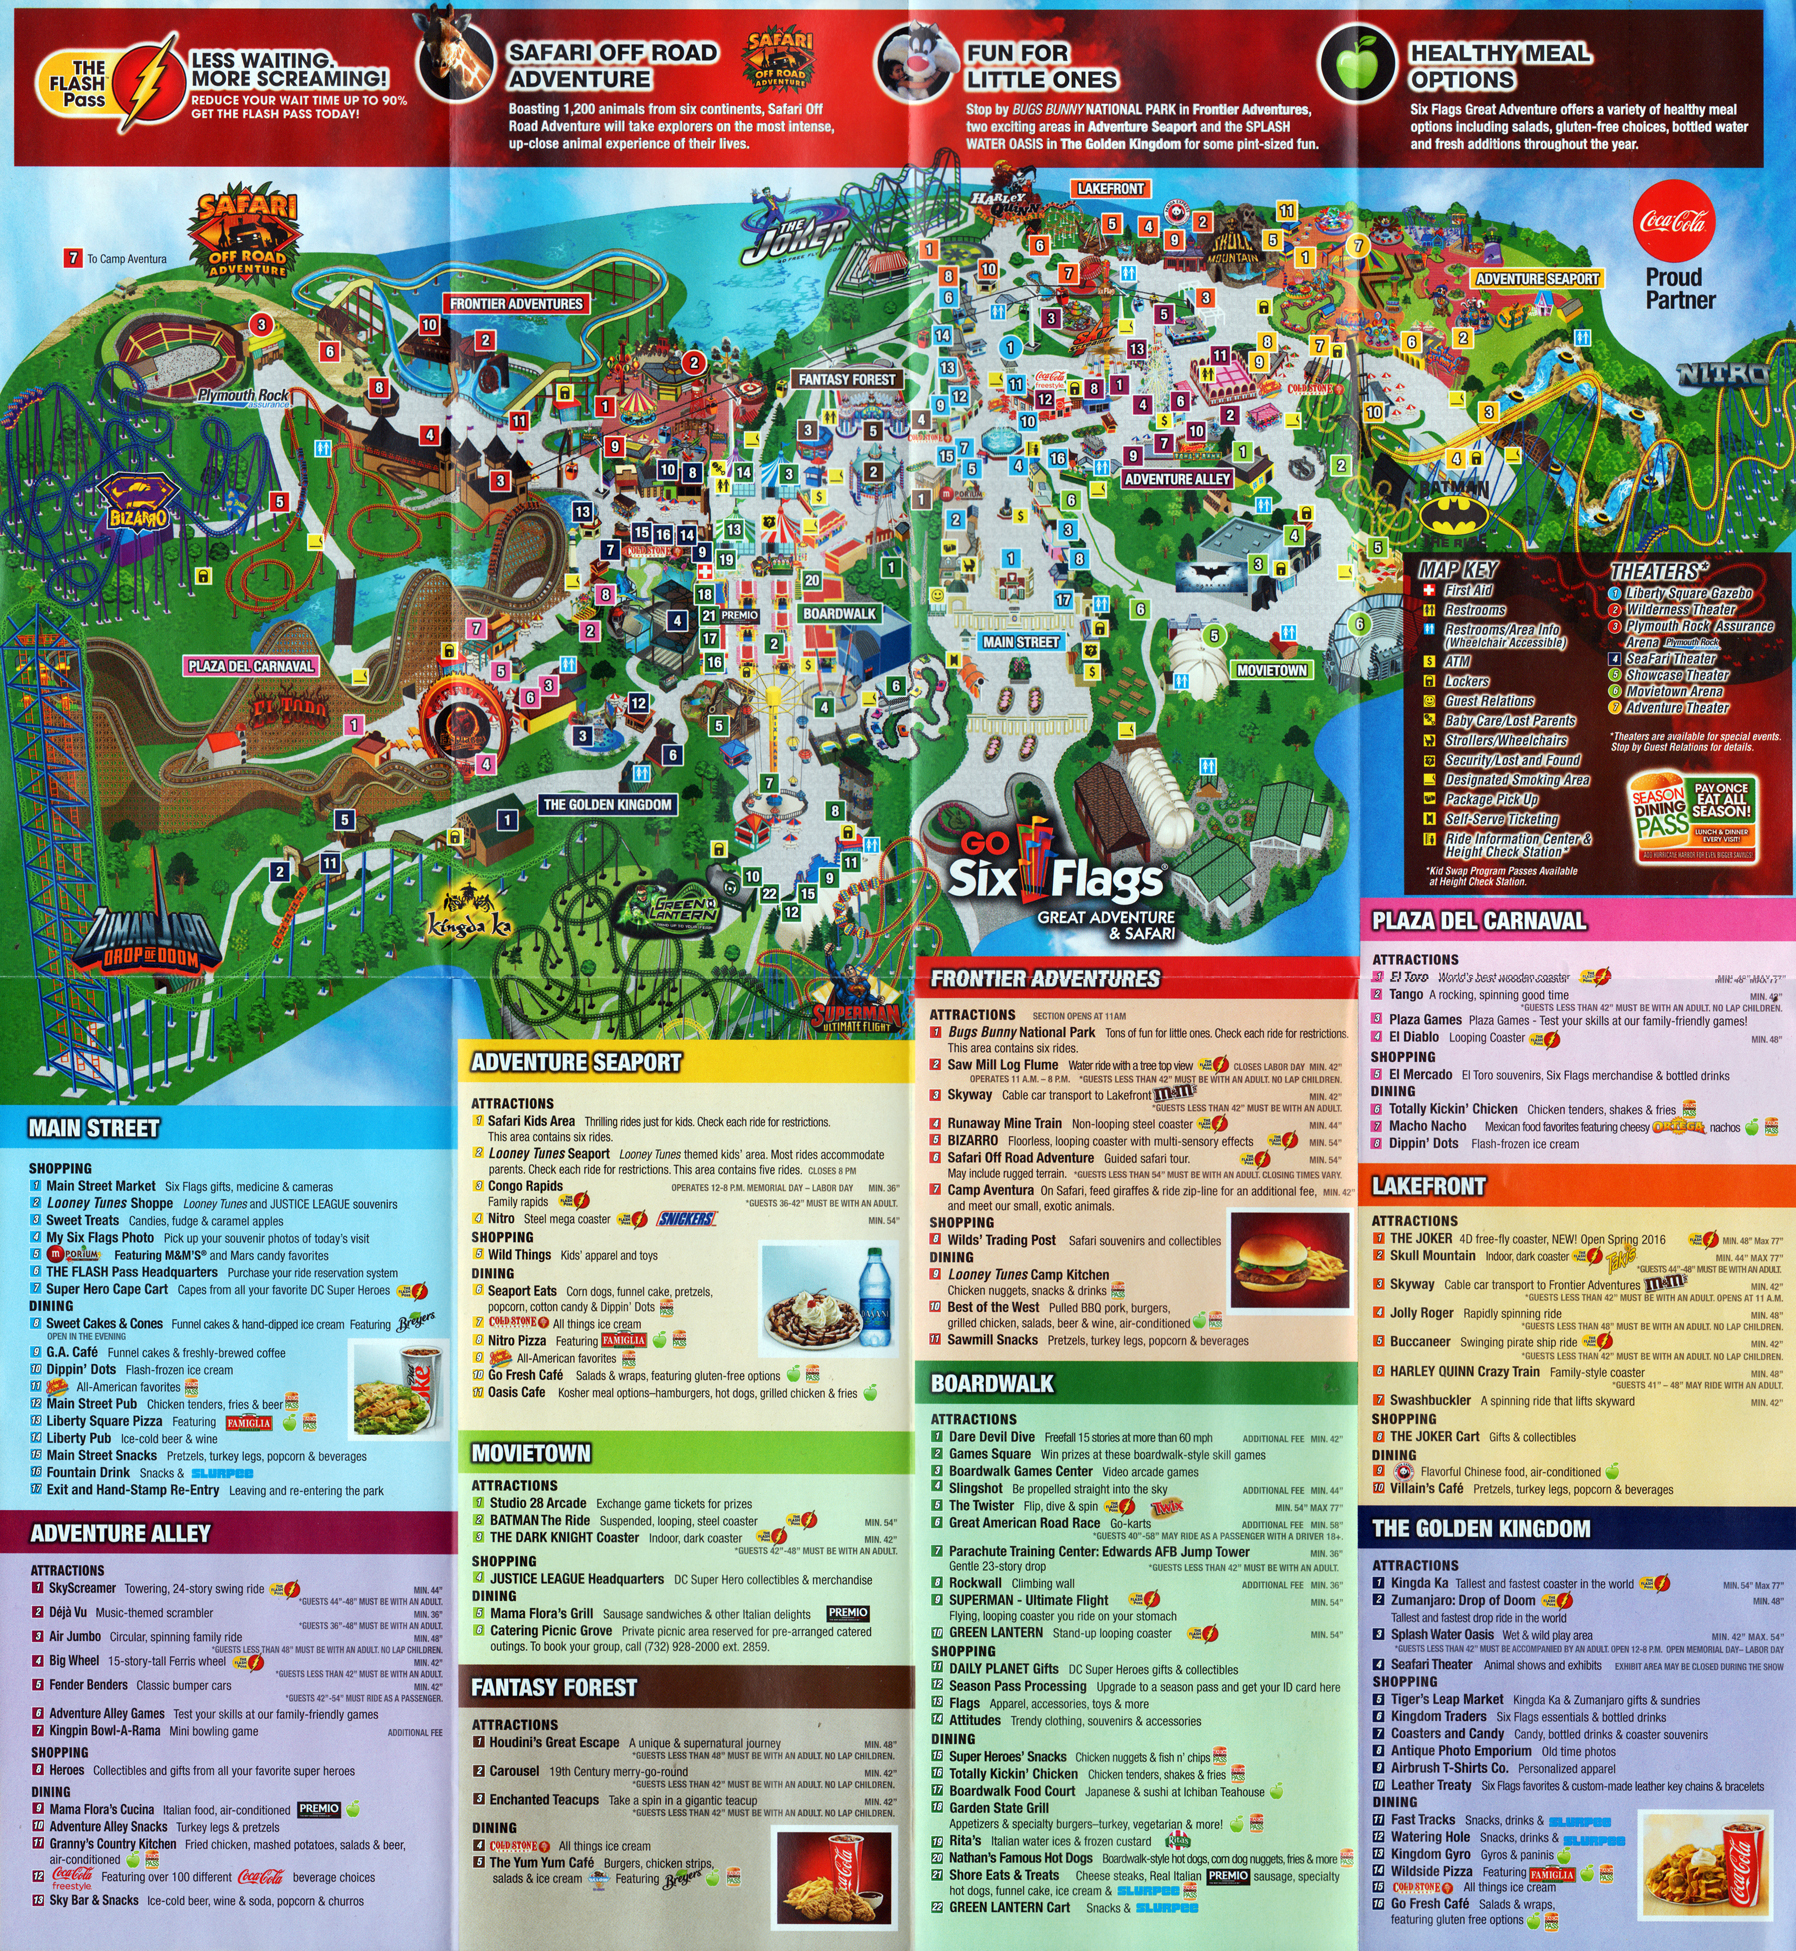 Six flags great adventure sfgadv discussion thread page 1667 image gumiabroncs Choice Image